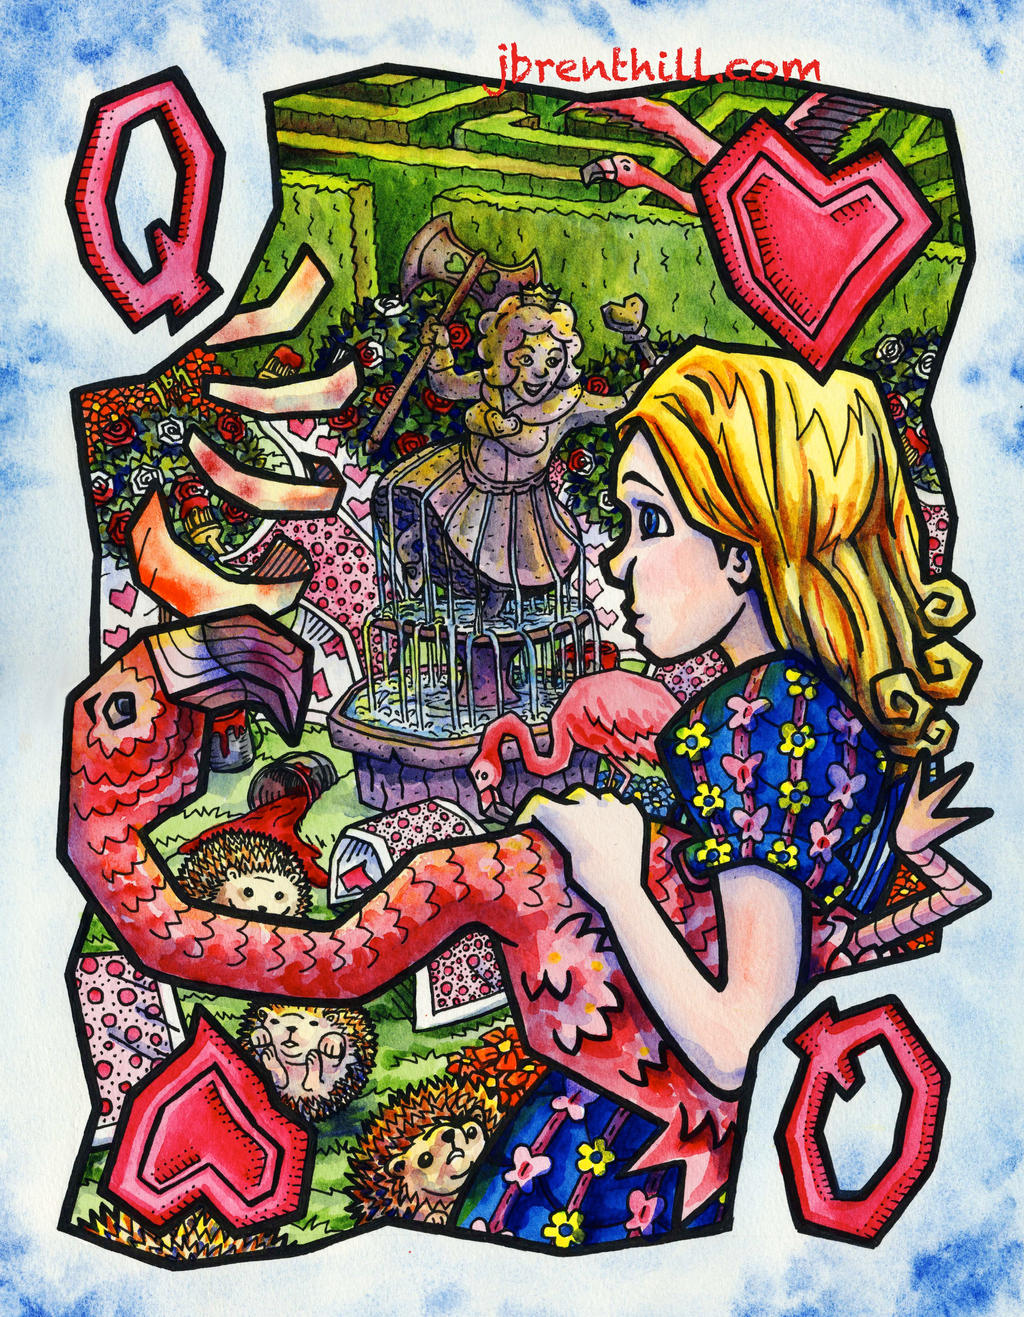 Wonderland Queen Card by jbrenthill